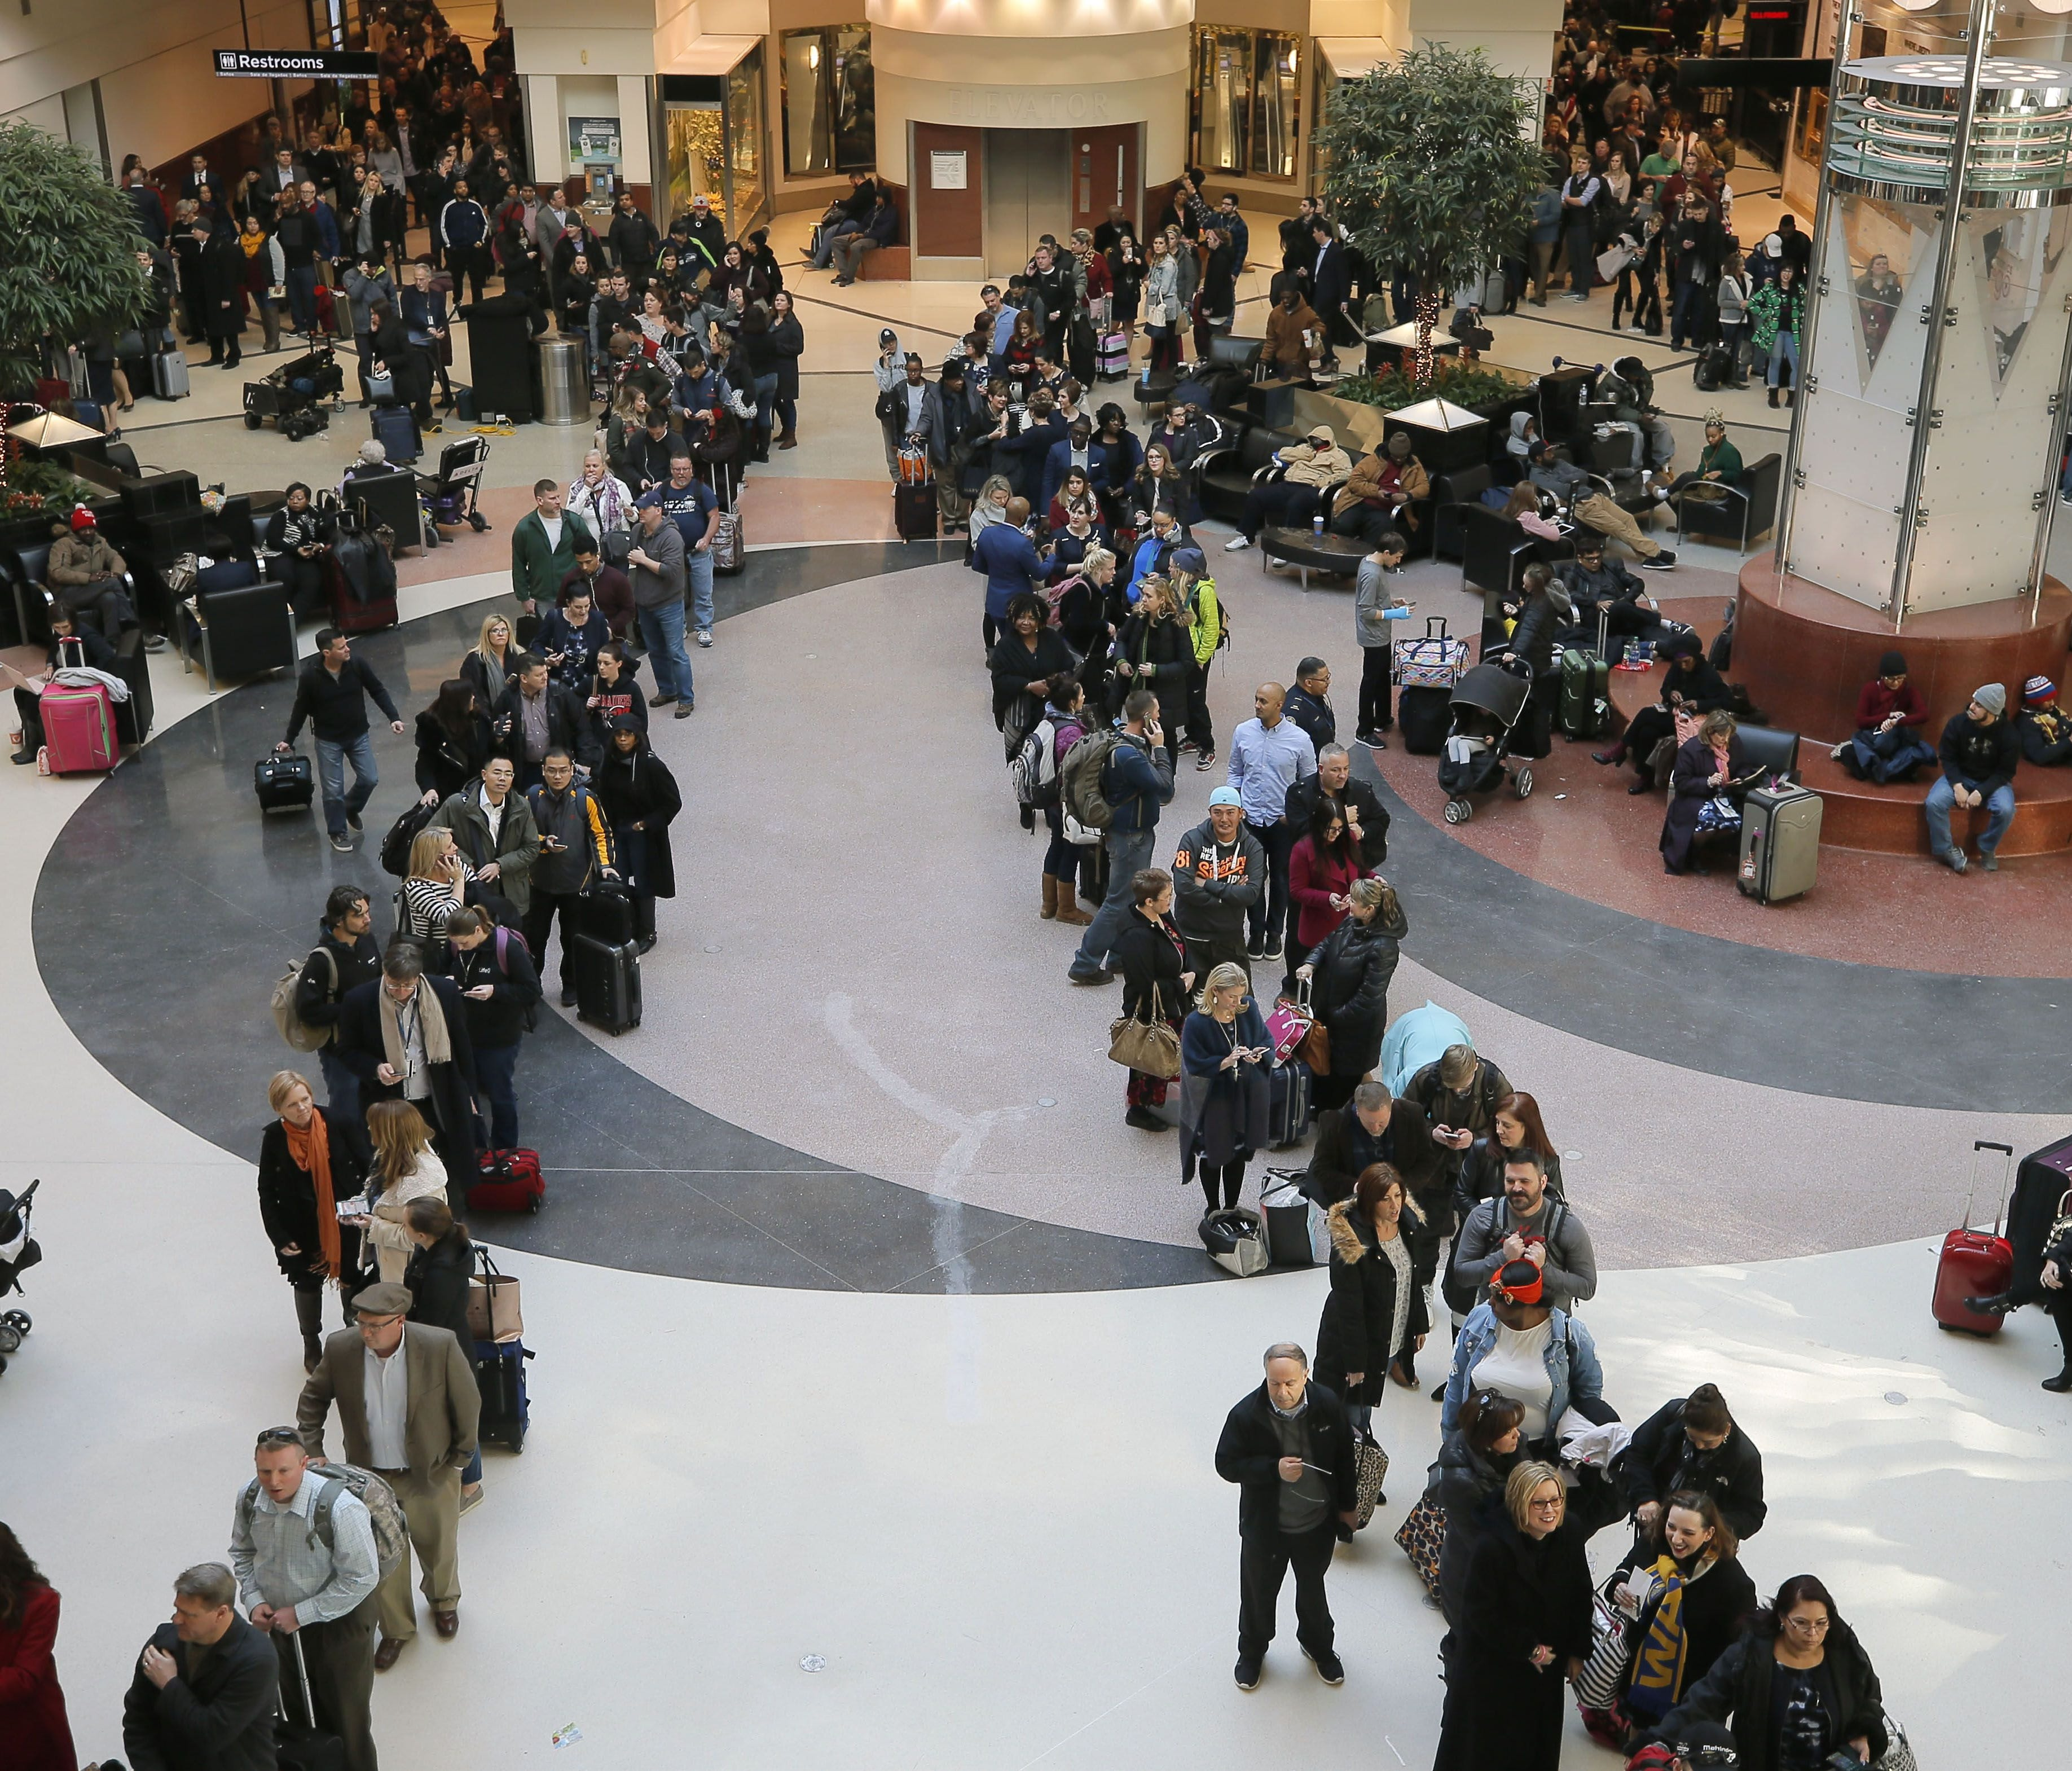 Security lines wrapped through the atrium and around the baggage areas and wait times were more than two hours long at Hartsfield-Jackson International Airport on Wednesday, Jan. 17, 2018, in the wake of a snowstorm. A shortage of TSA screeners was b